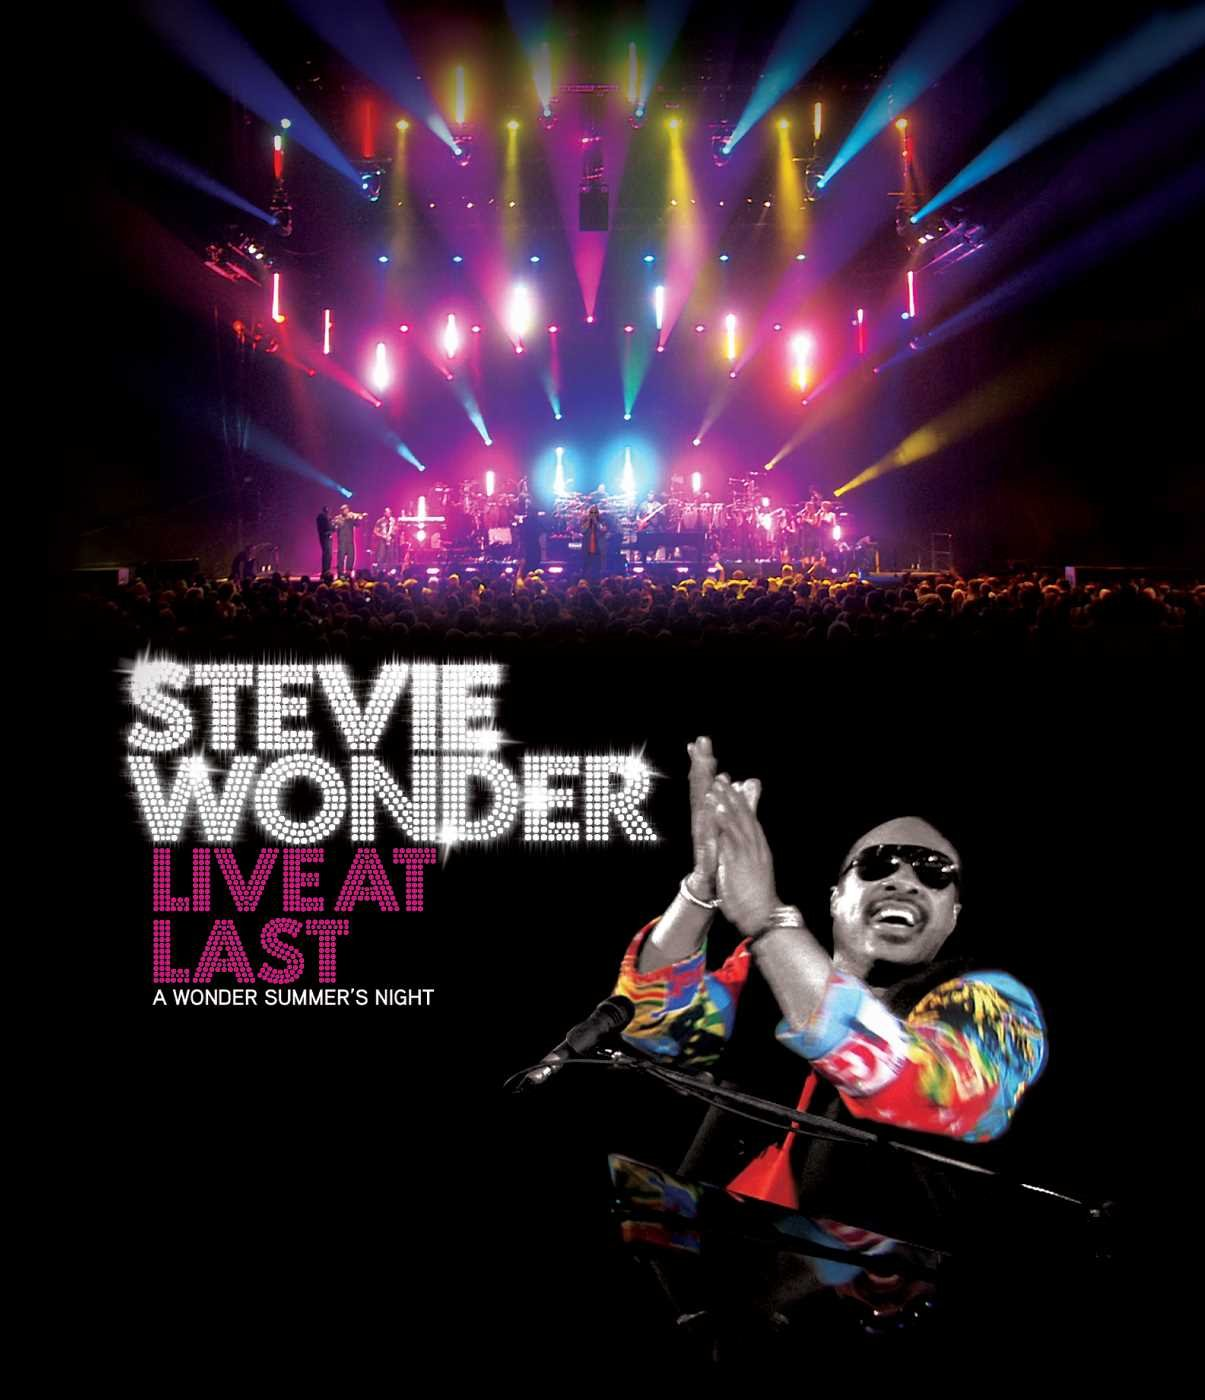 Stevie Wonder: Live at Last [Blu-ray] by Motown